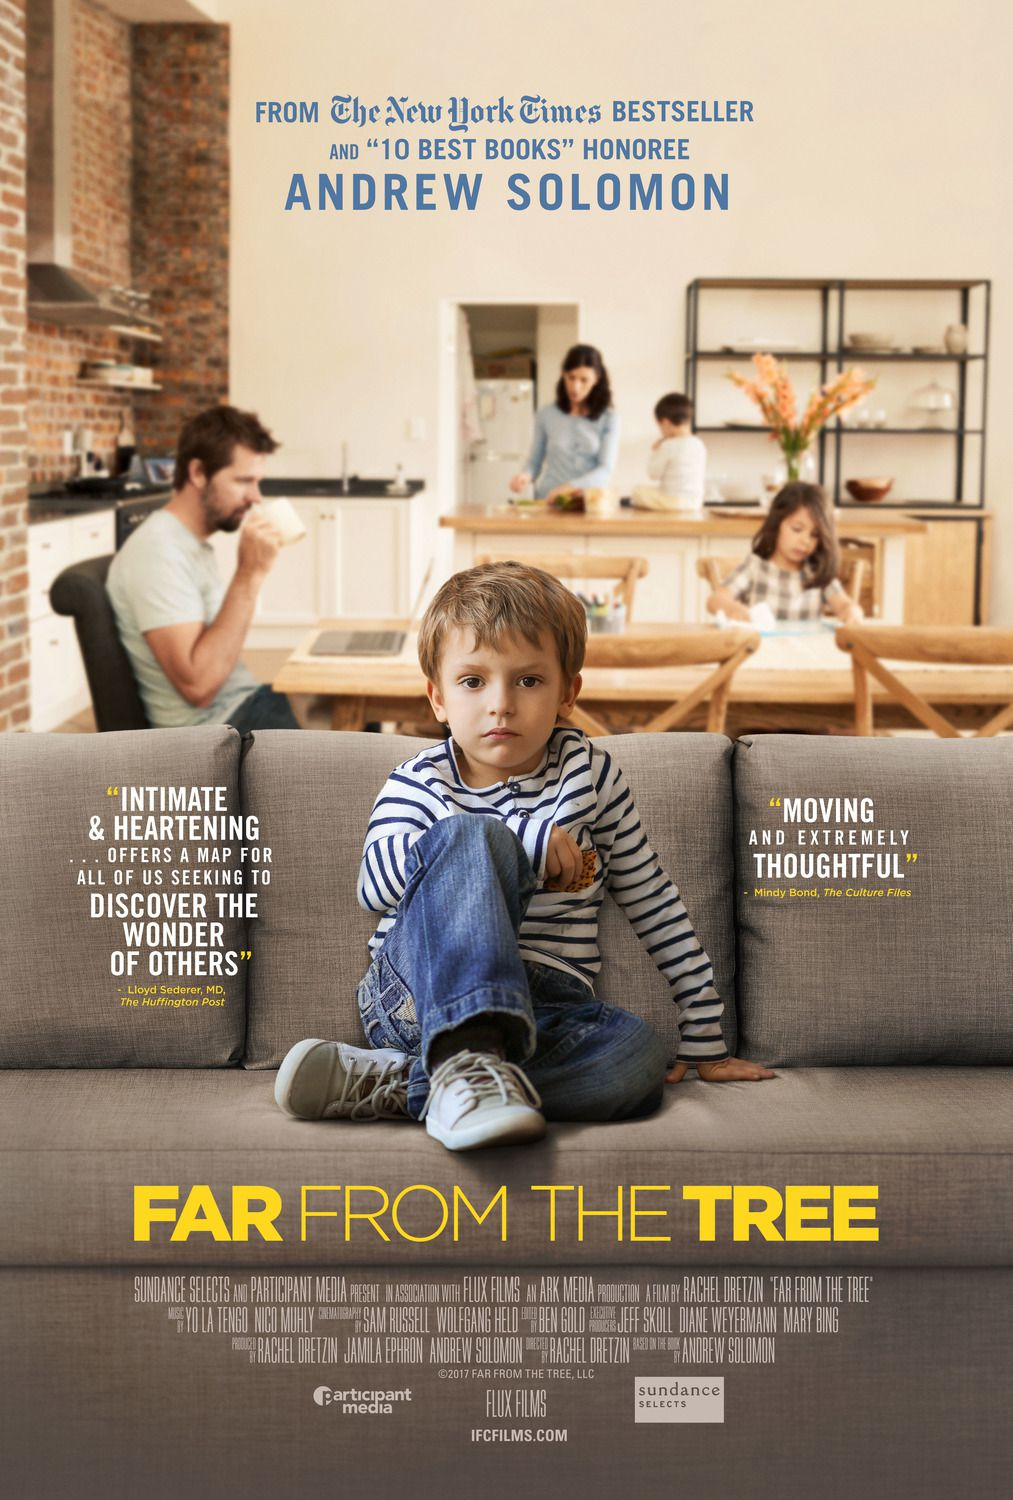 Far From the Tree 2018 - film poster